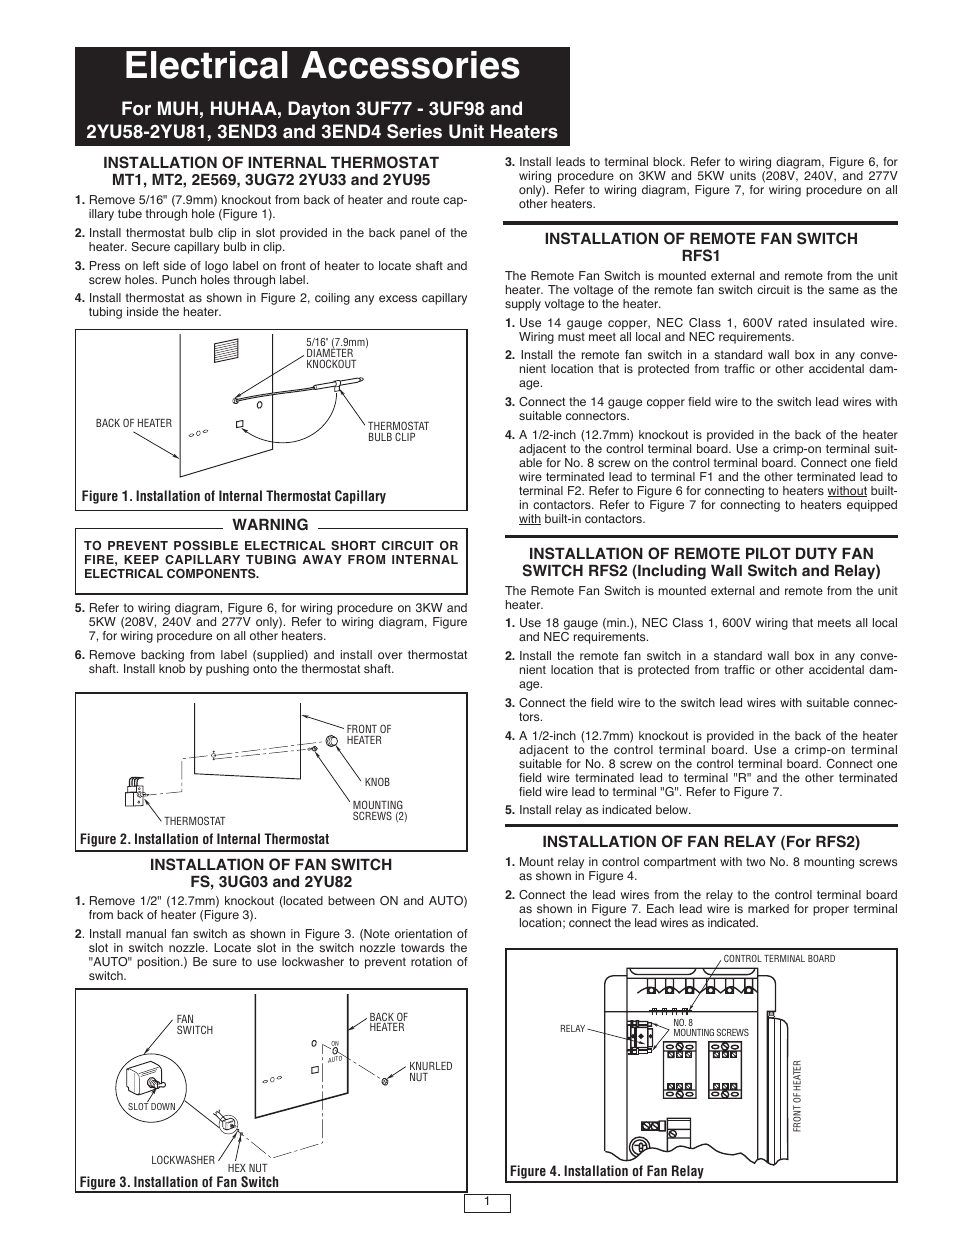 qmark muh horizontal downflow unit heaters user manual 2 pages